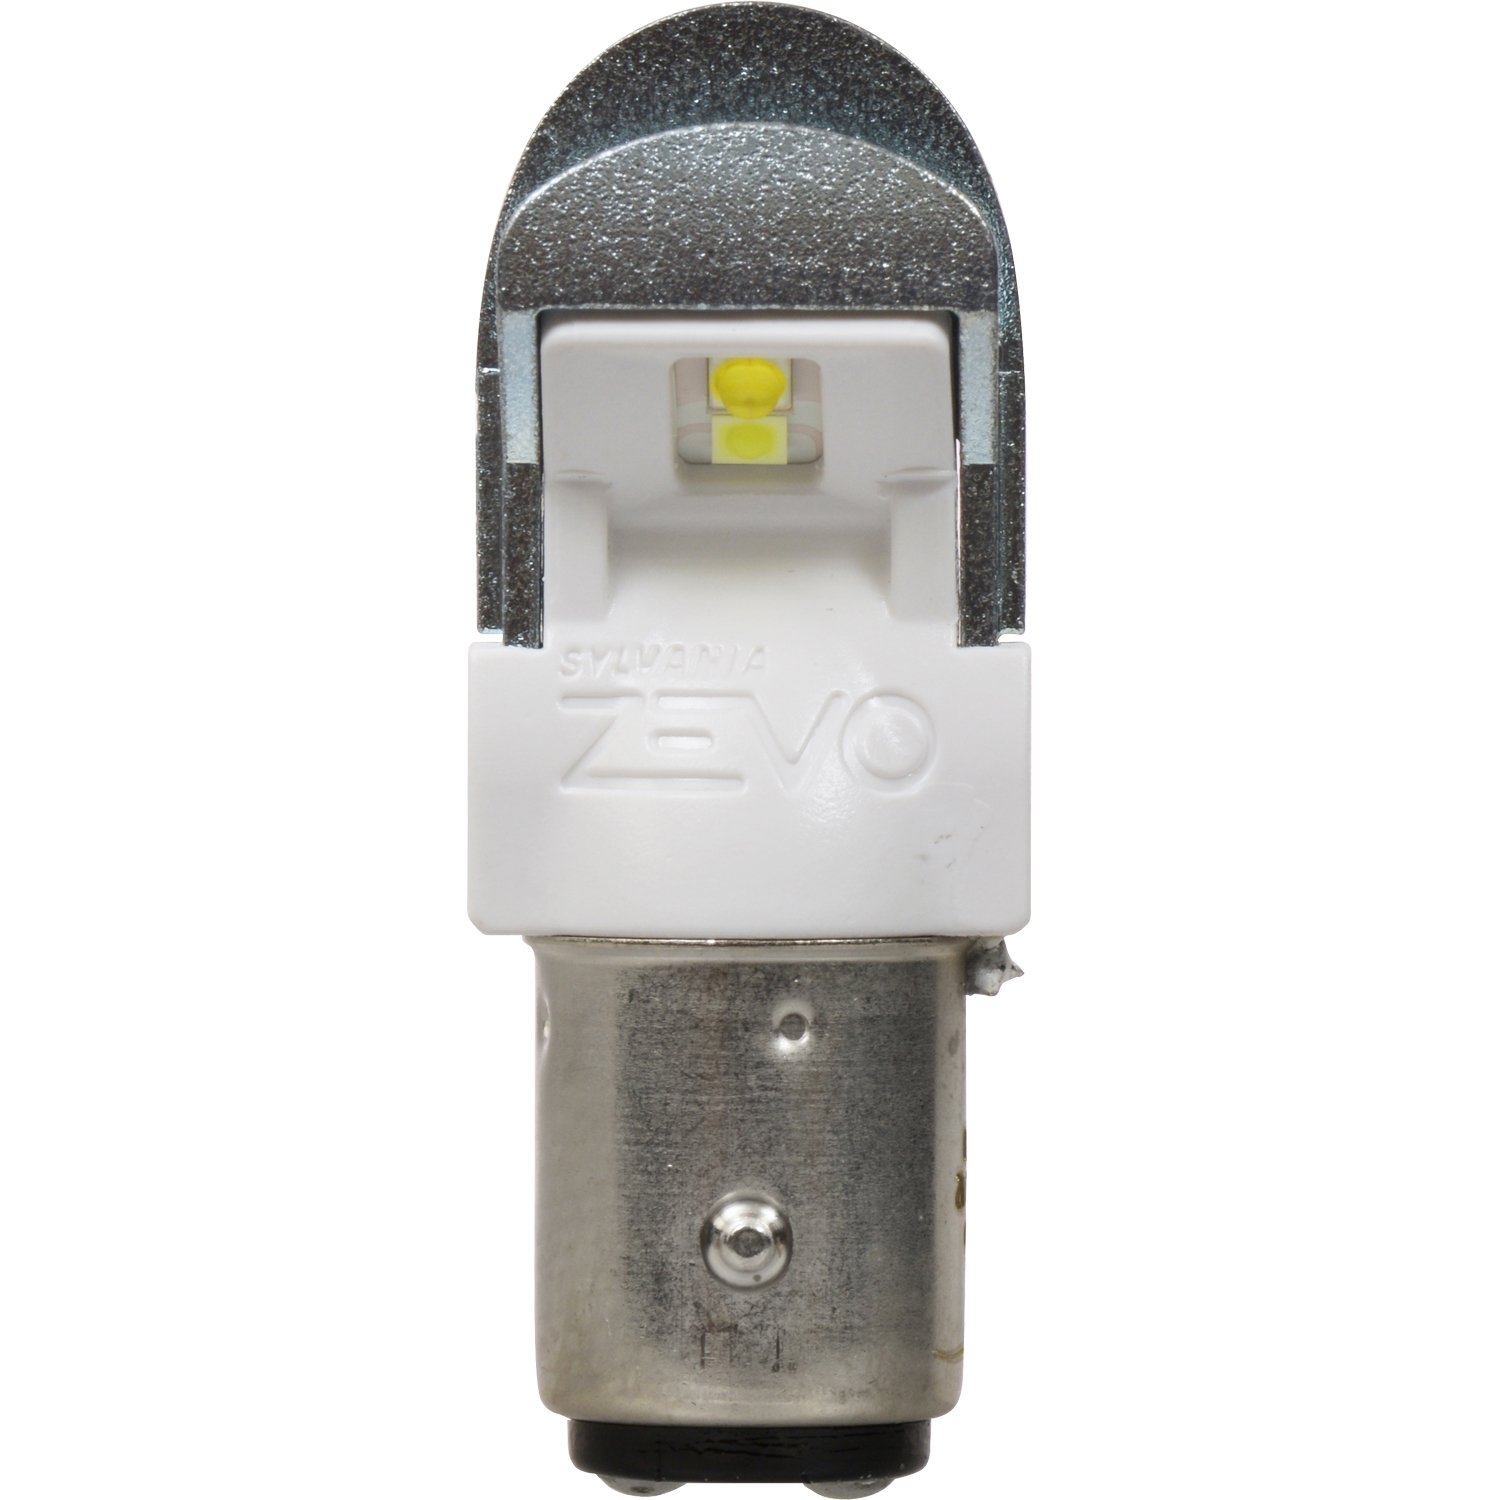 DRL Ideal for Daytime Running Lights Contains 2 Bulbs SYLVANIA and Buck-Up//Reverse Lights Bright LED Bulb 2057 ZEVO LED White Bulb